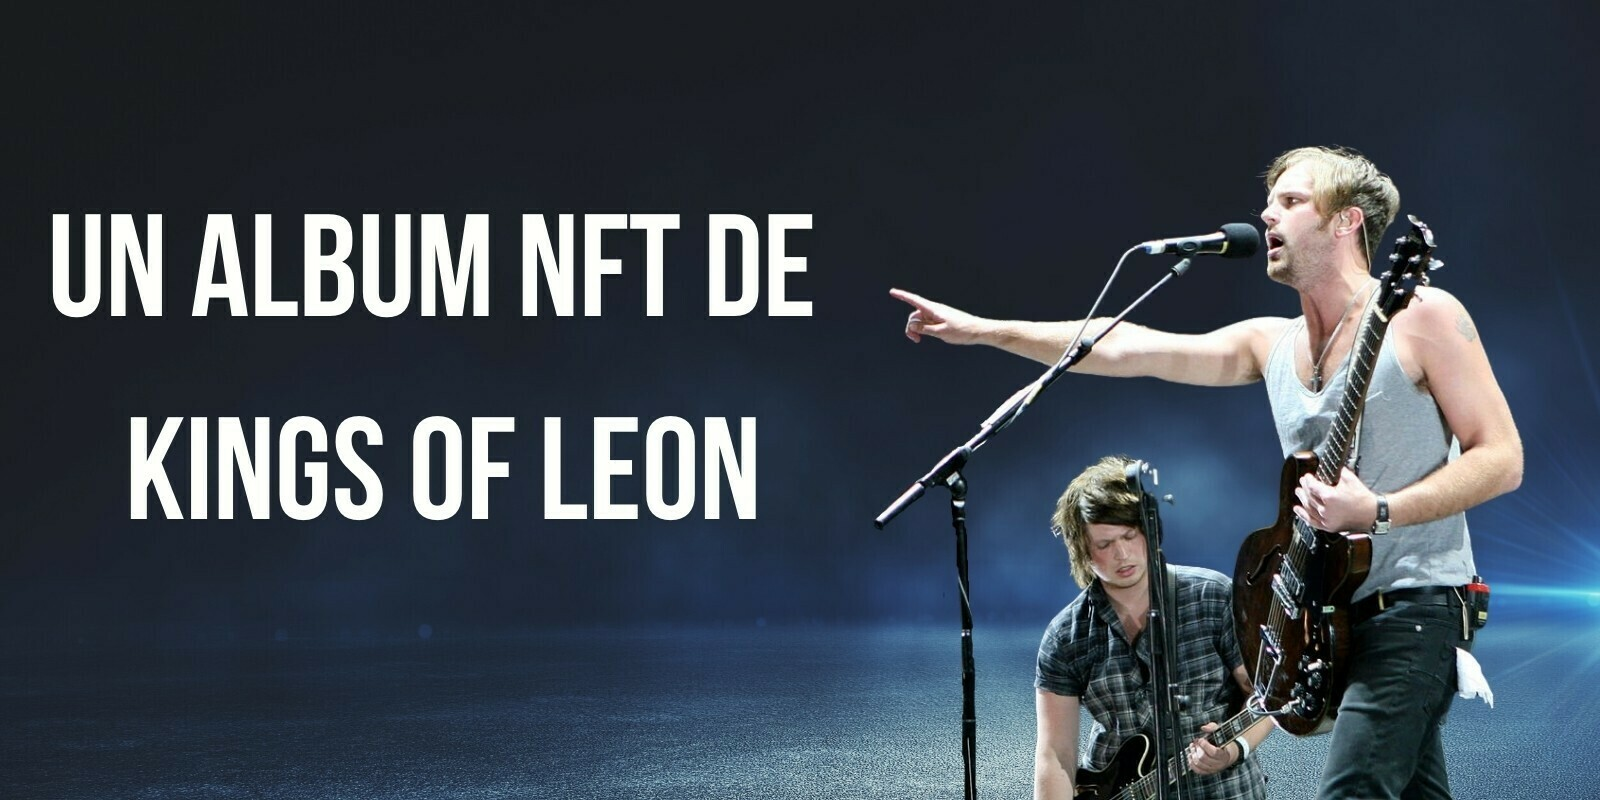 Le groupe de rock Kings of Leon sort le premier album NFT de l'histoire